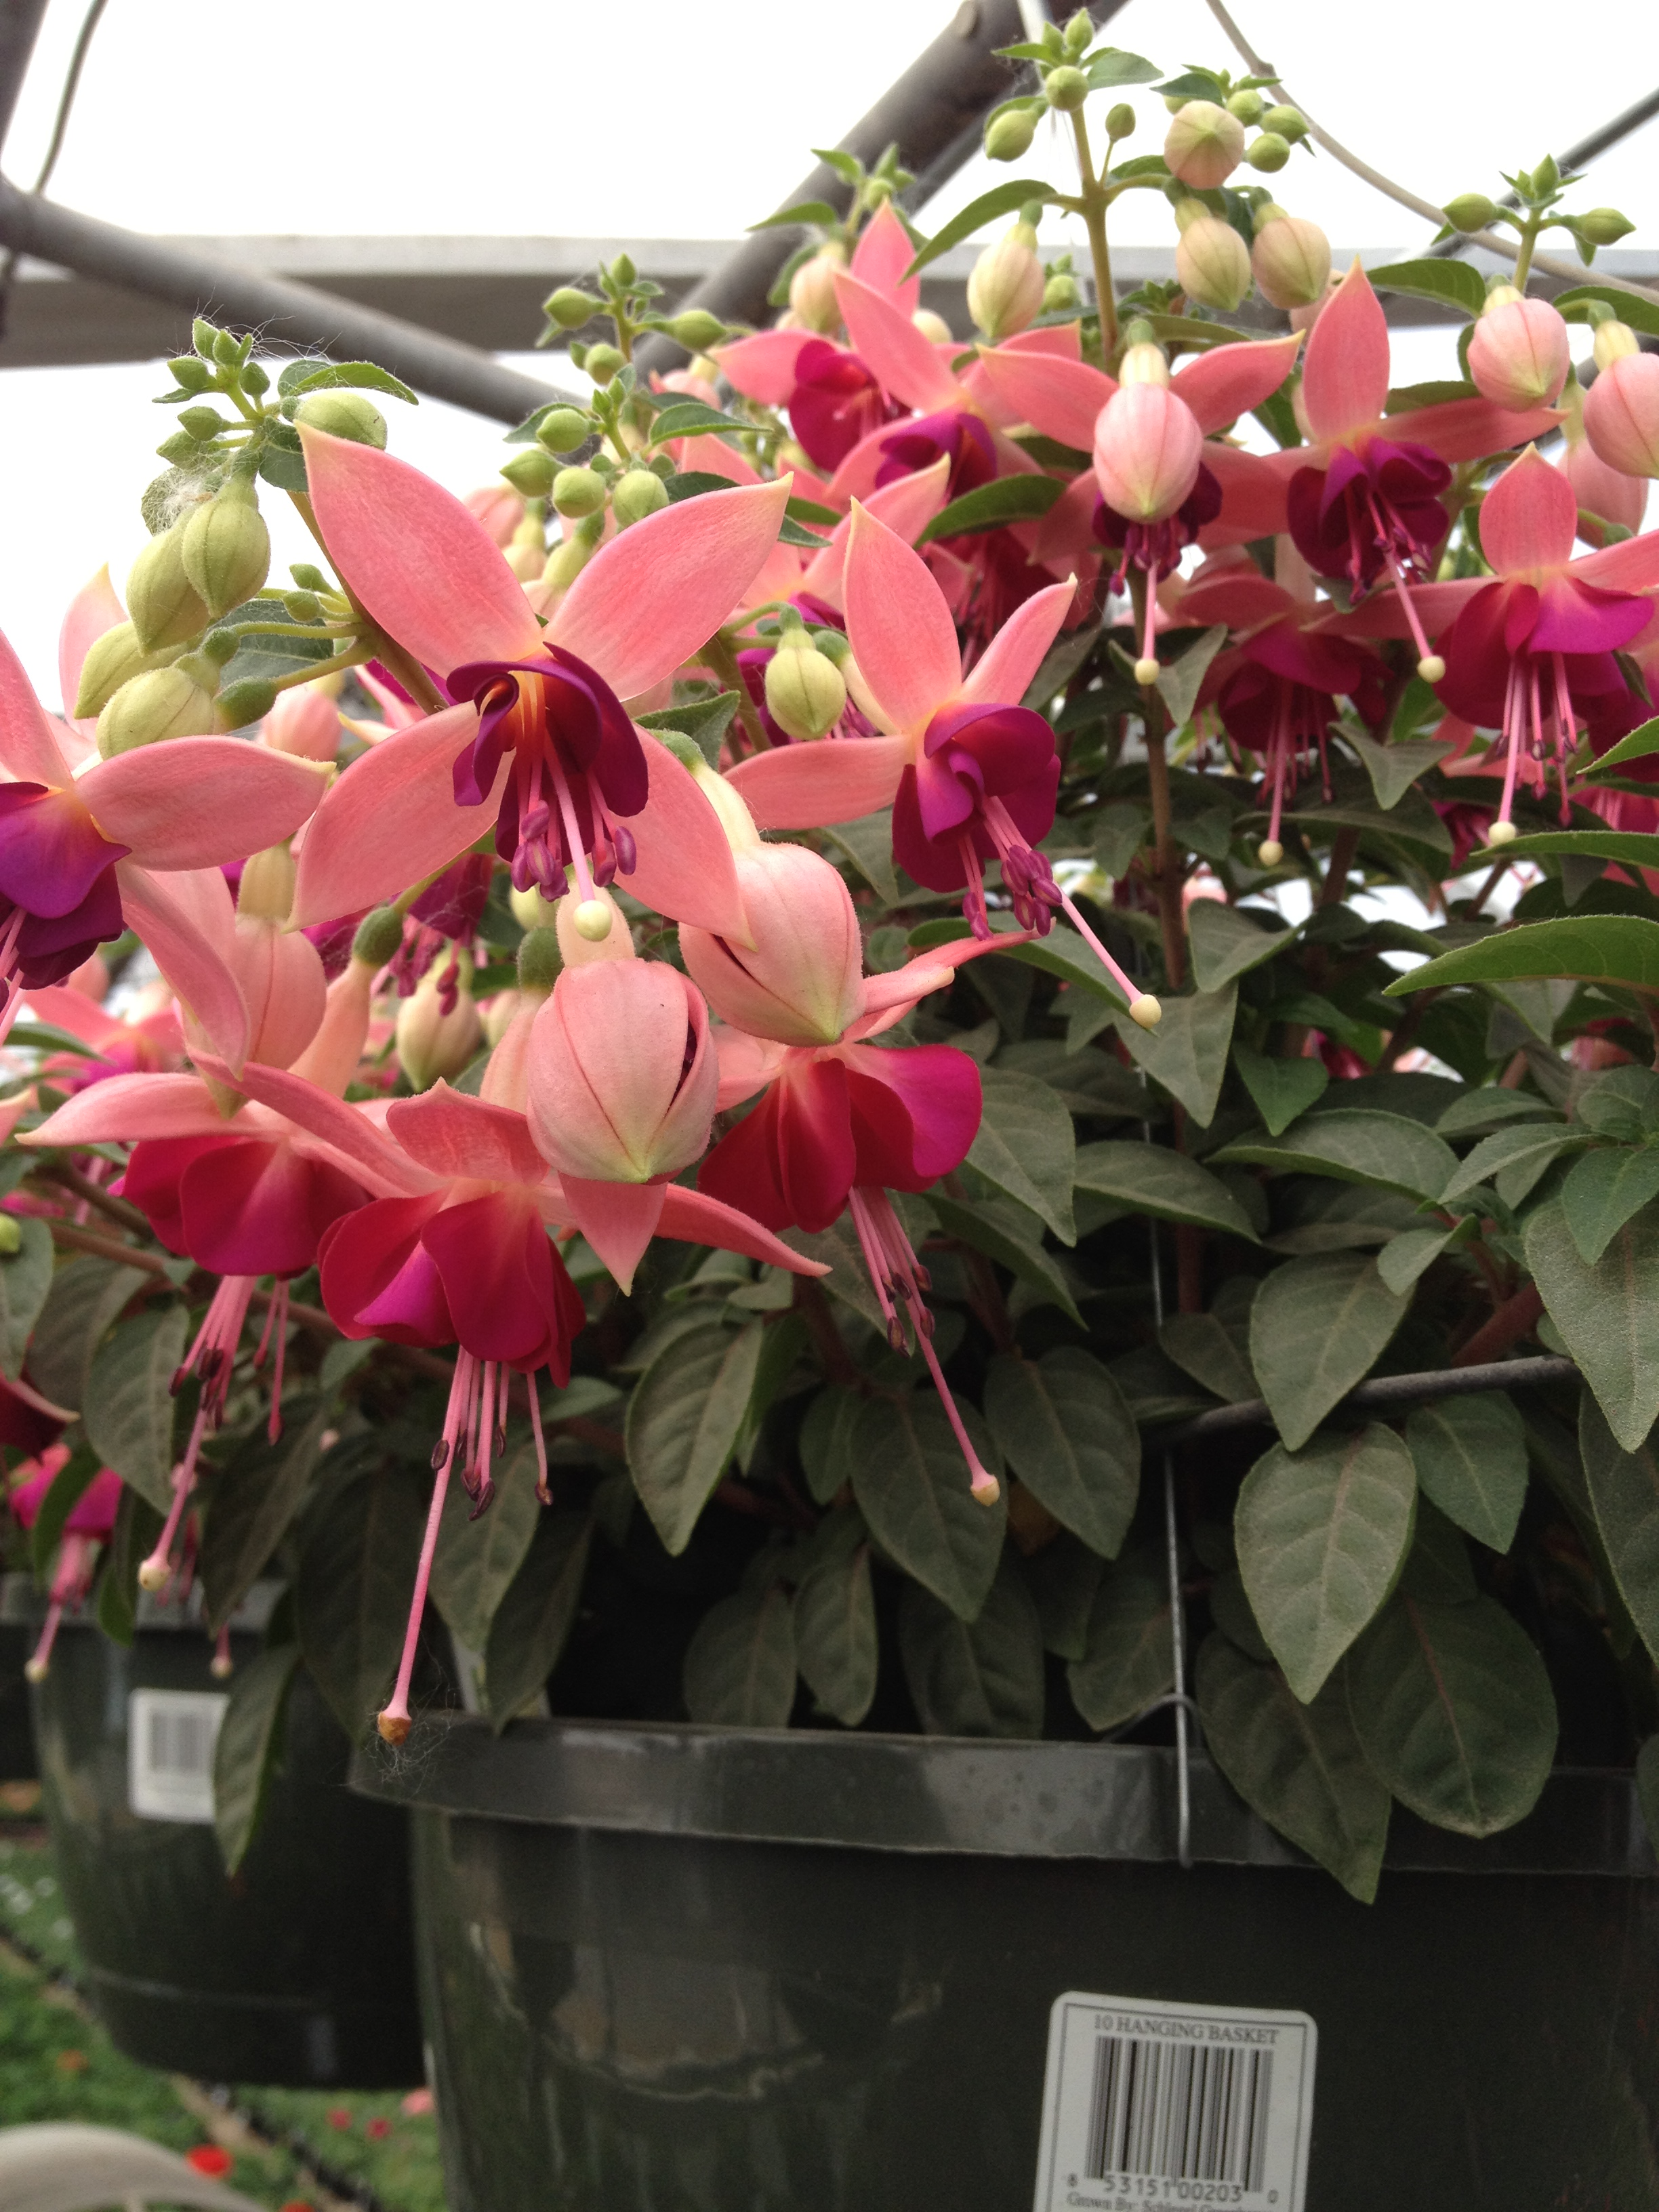 "At Schlegel Greenhouse you can expect to find a good variety of Fuchsia to choose from. Whether they are in 10"" hanging baskets with the trailing Fuchsia or the 4.5"" upright fuchsia. They are are very capable performers during the spring and are low maintenance on the retail end. Fuchsia brings unique color and attracts customers to your spring display."